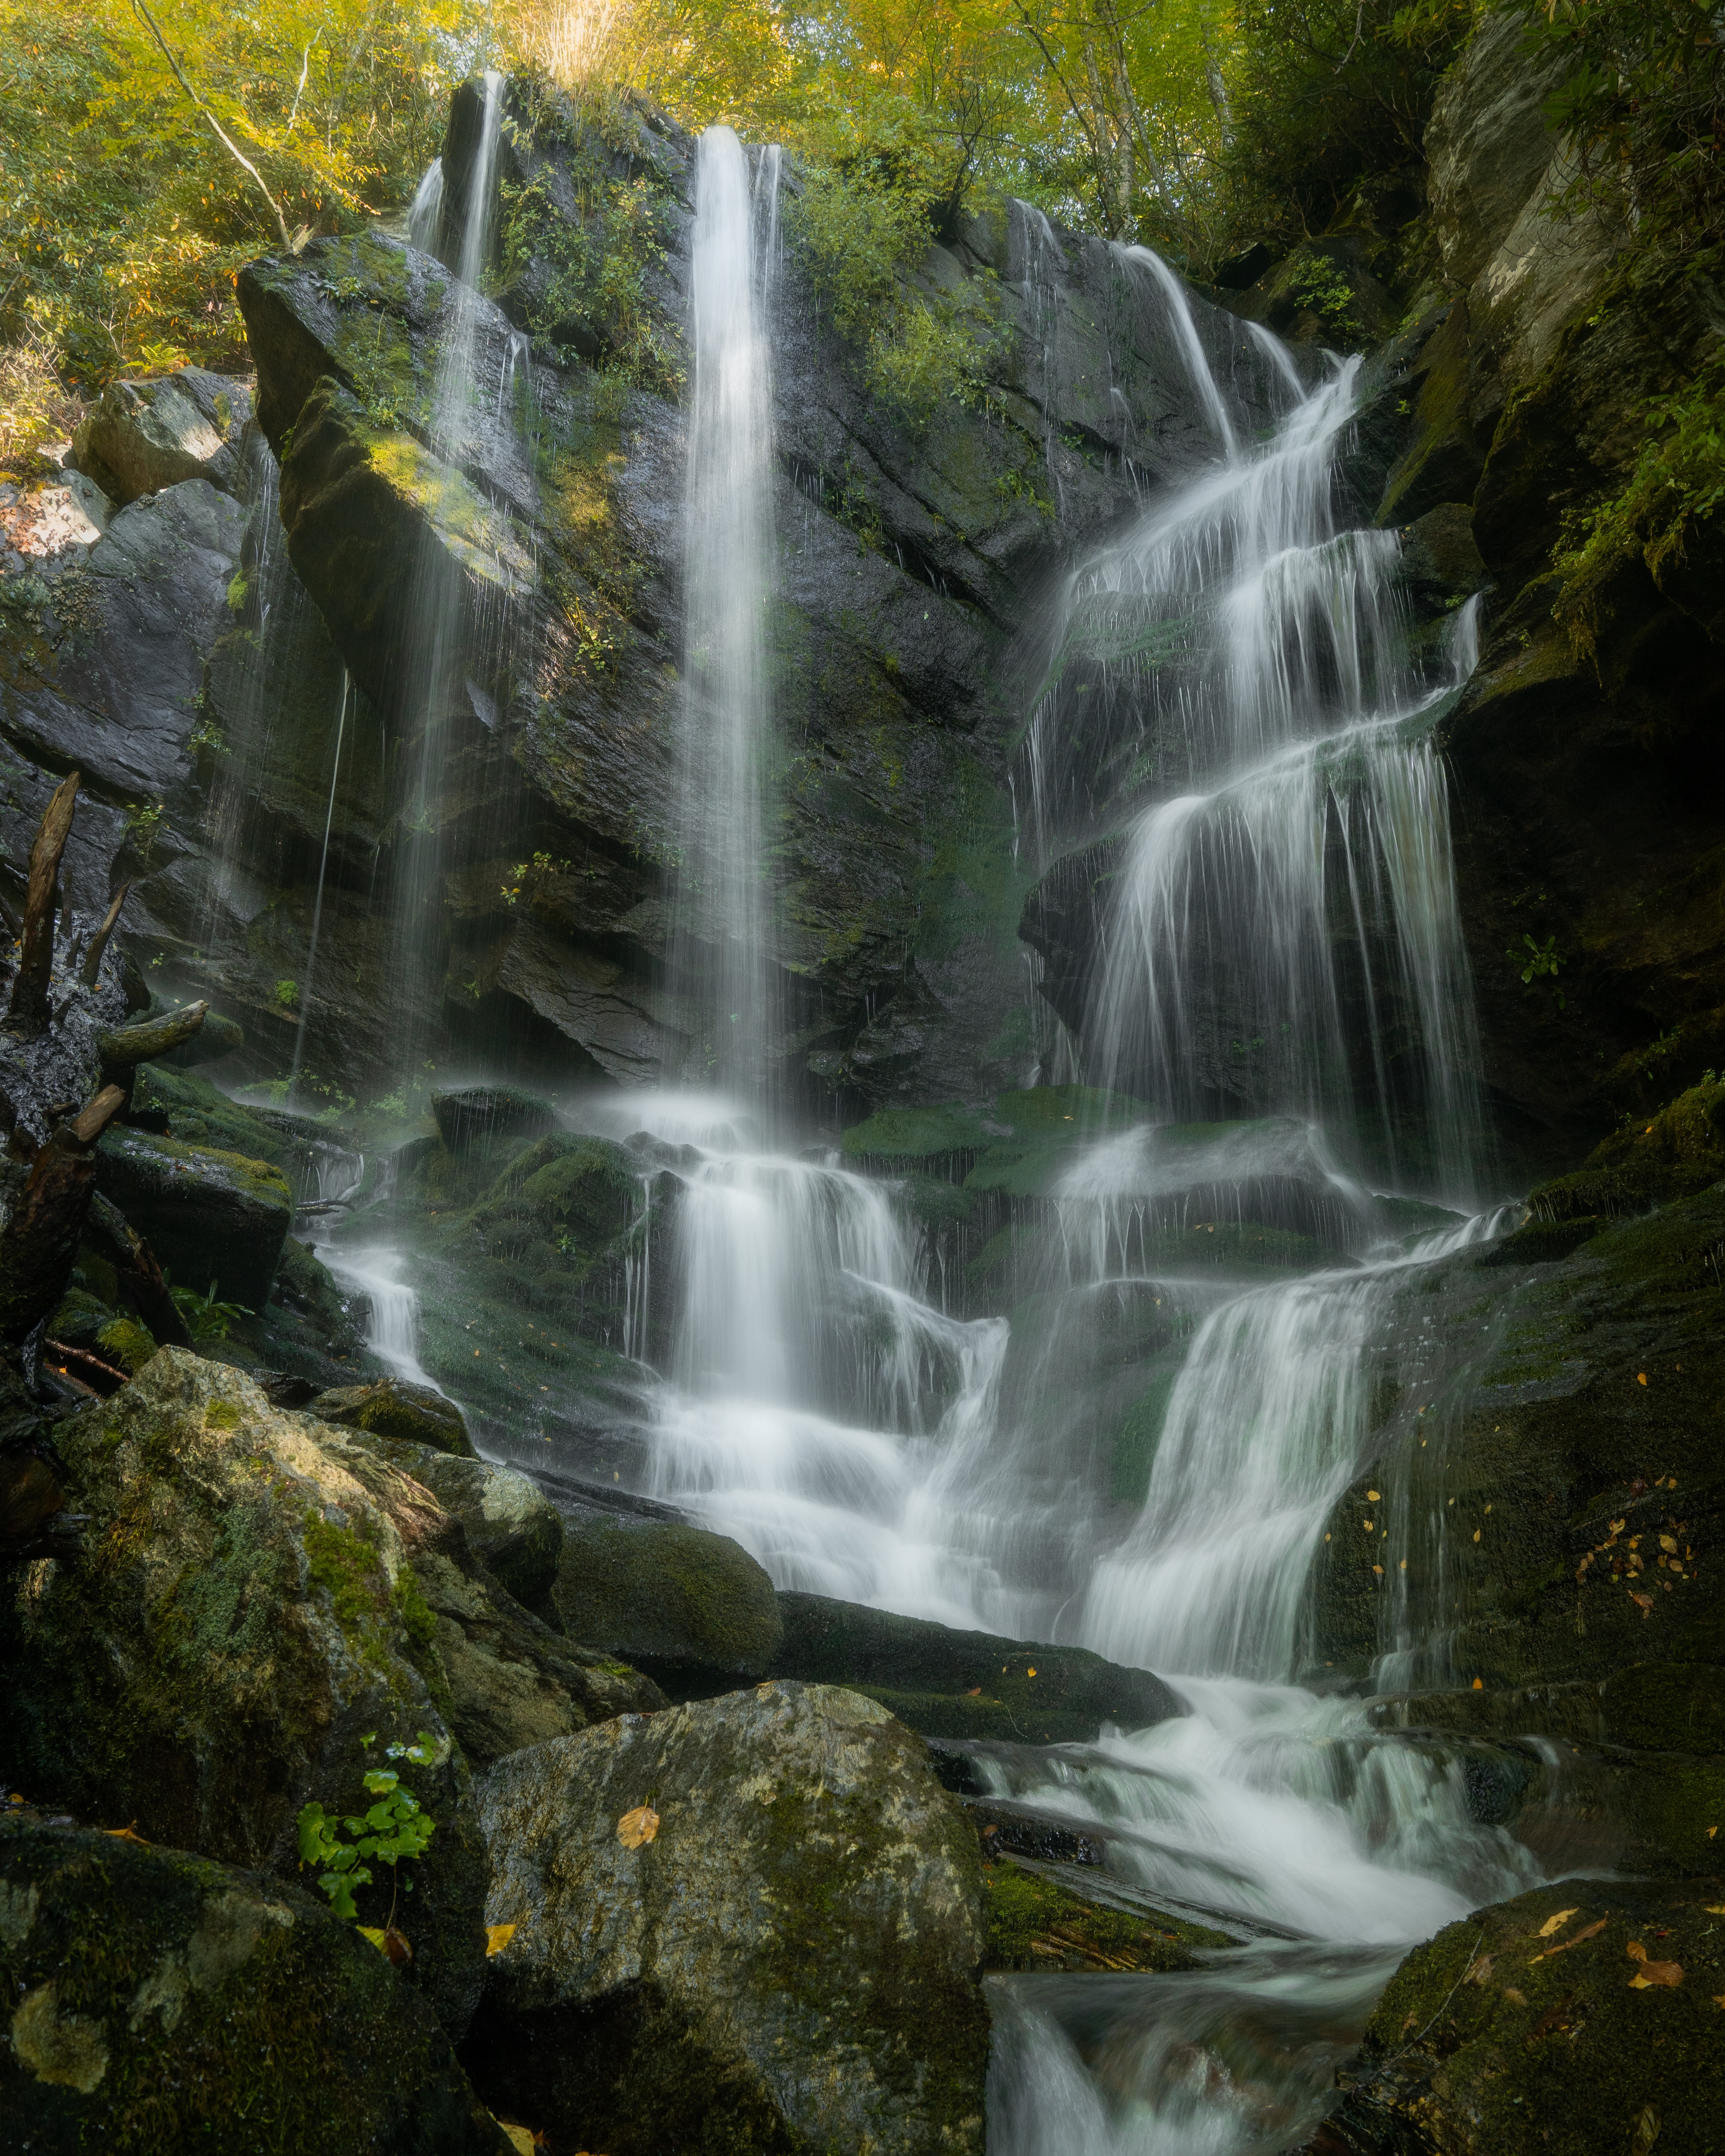 Waterfall cascading over mossy rocks in early morning light.